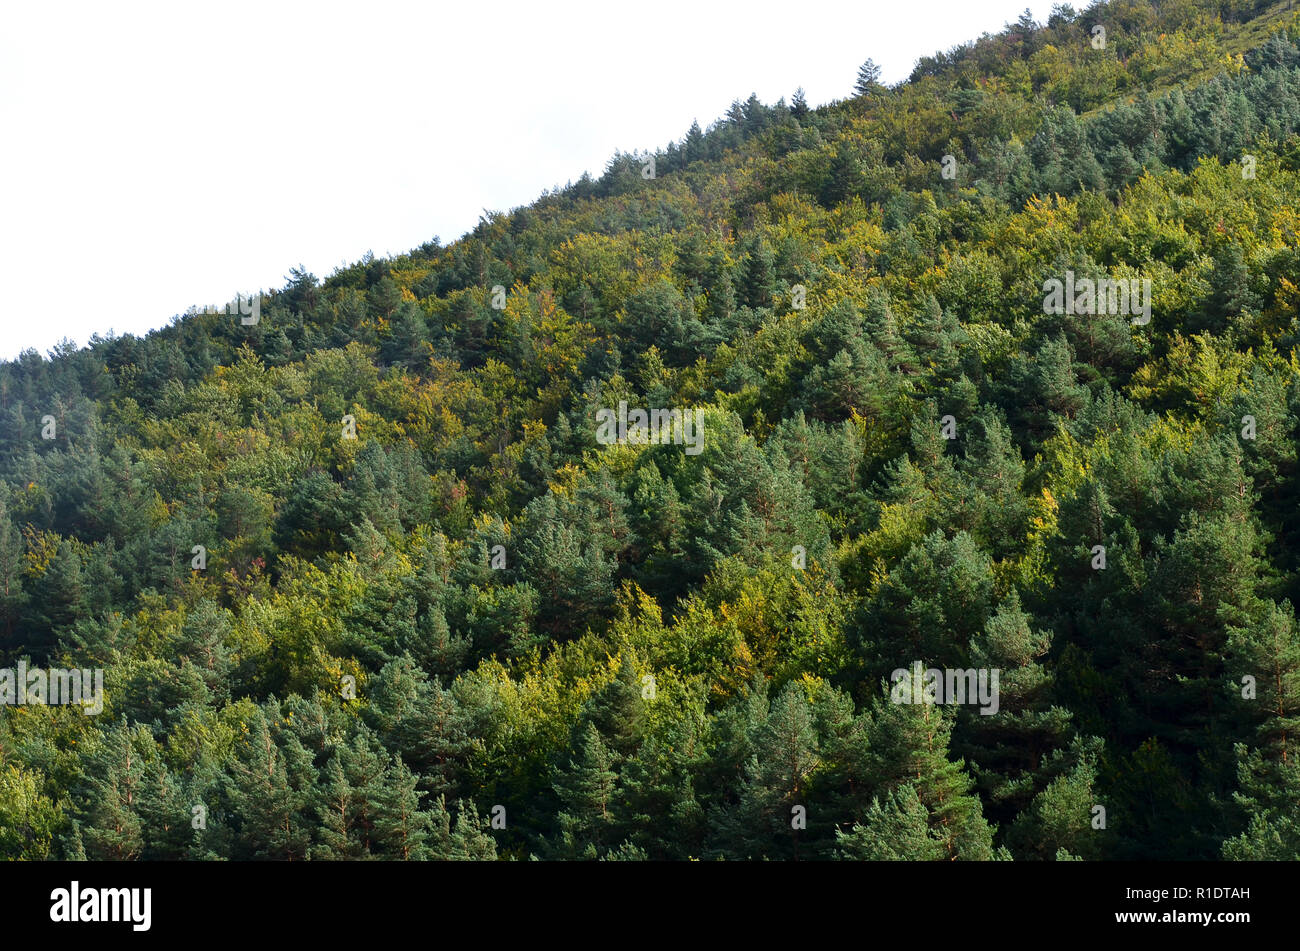 Natural oak and beech forest regenerating amidst a pine tree afforestation in the Tejera Negra Natural Reserve, Guadalajara province, central Spain - Stock Image